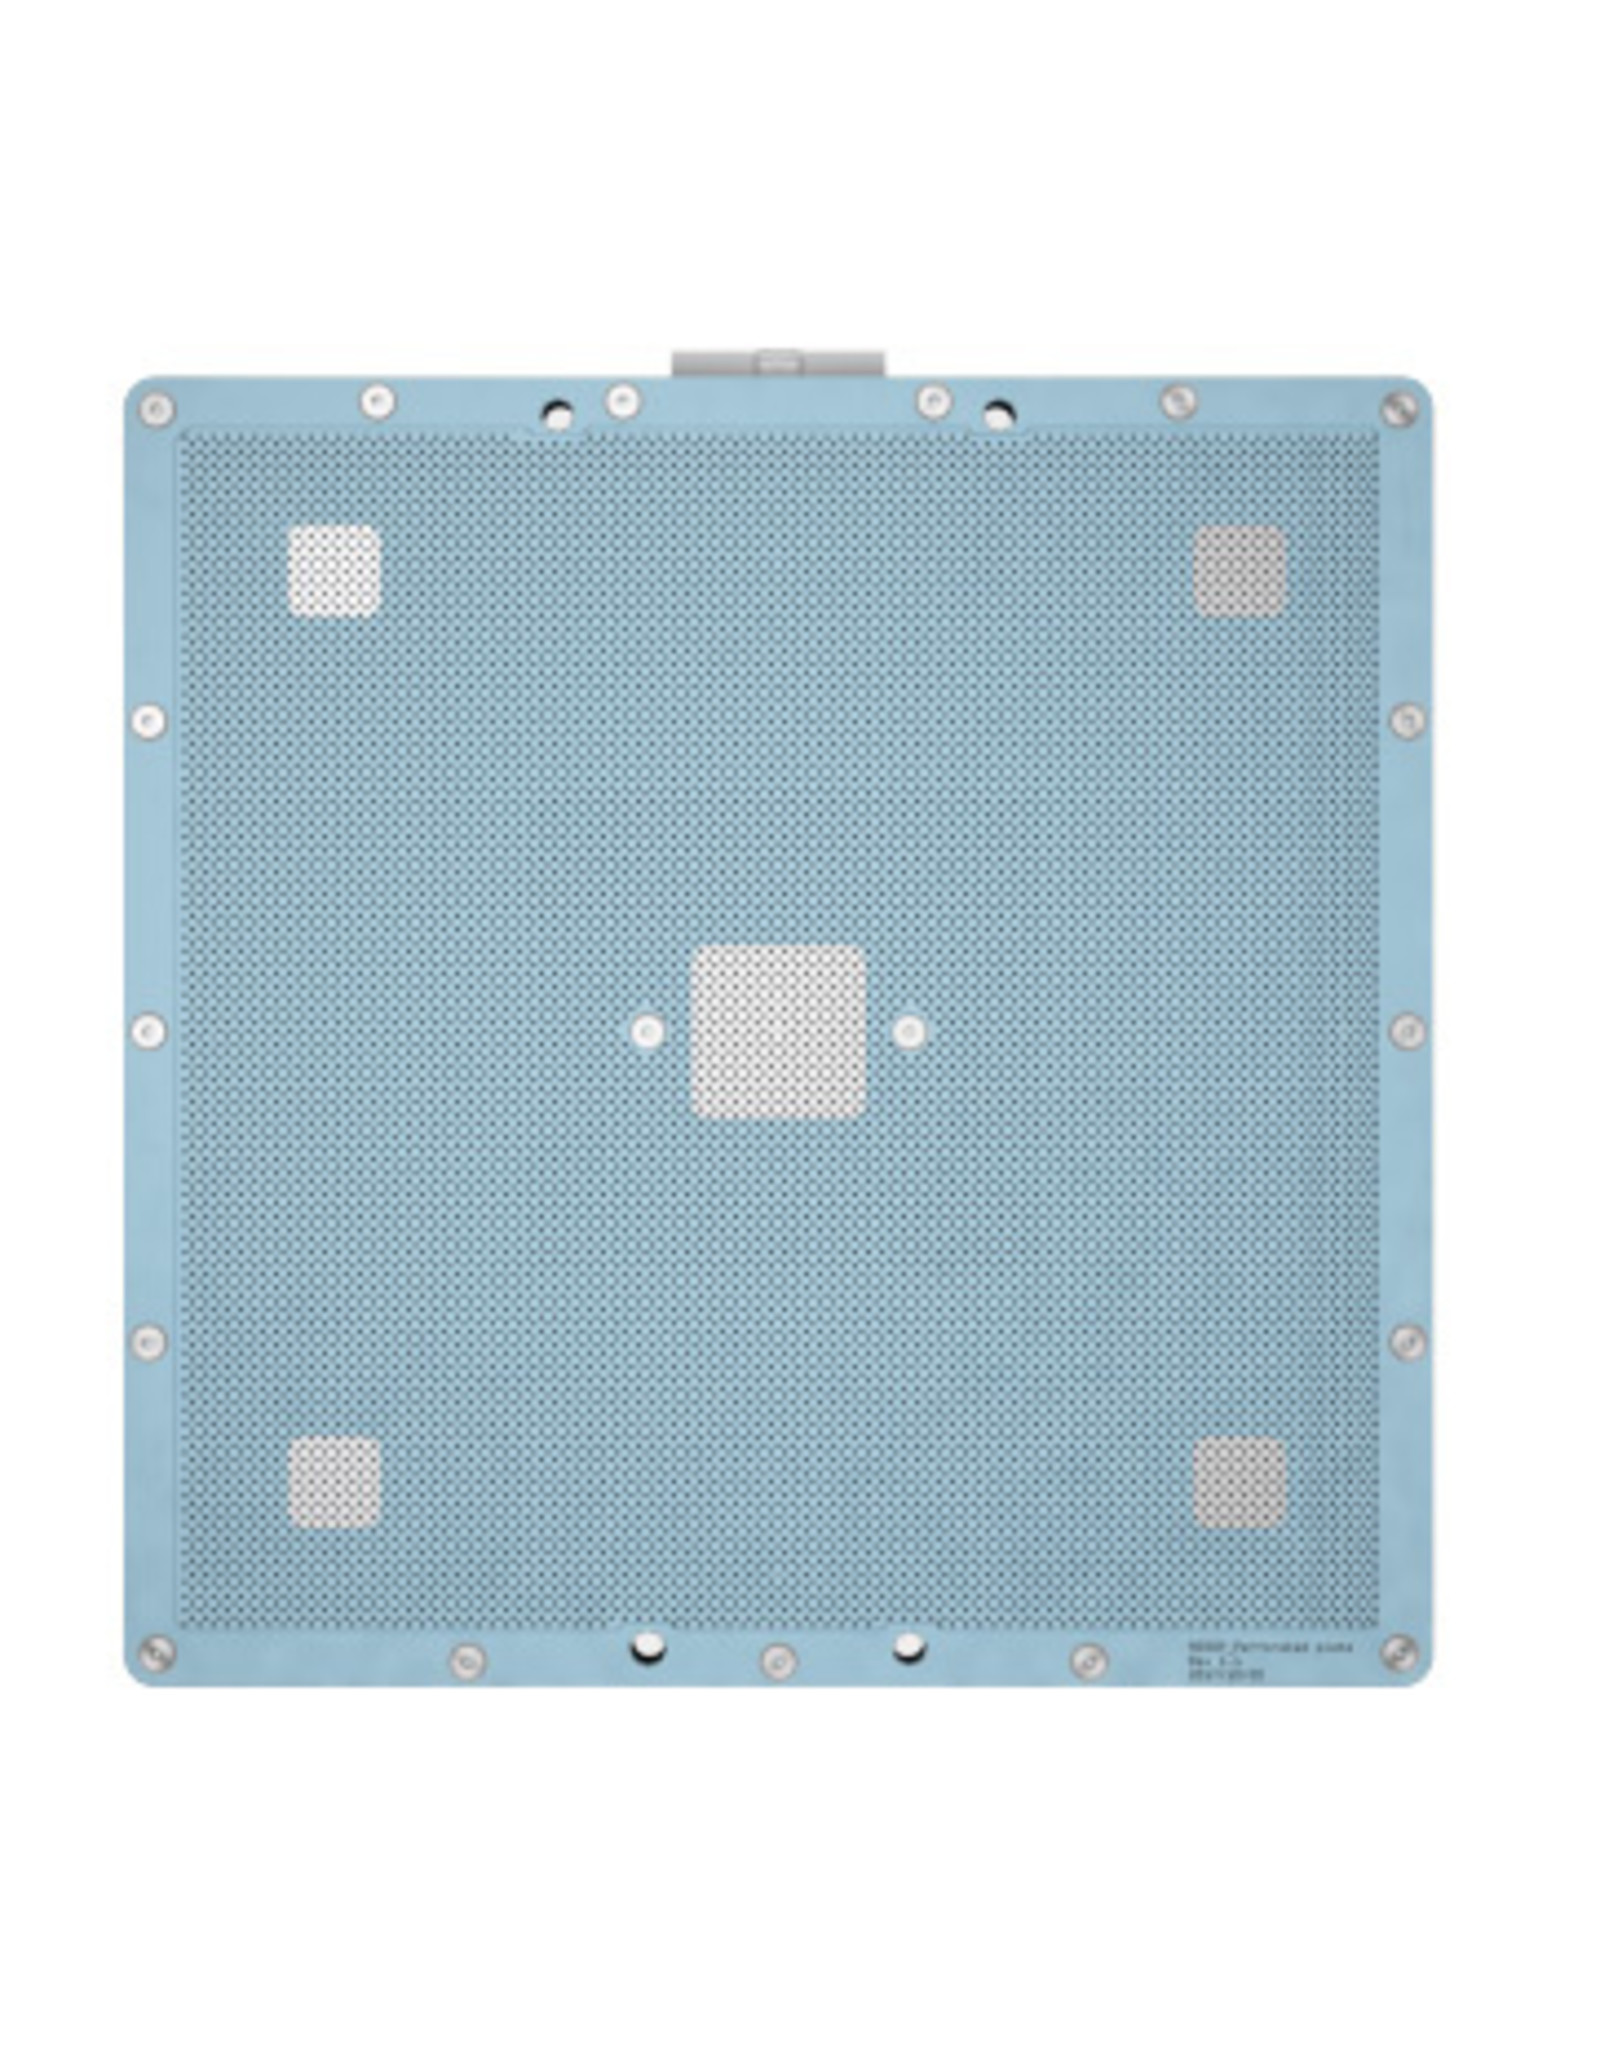 Zortrax Perforated Plate V2 for M200 Plus